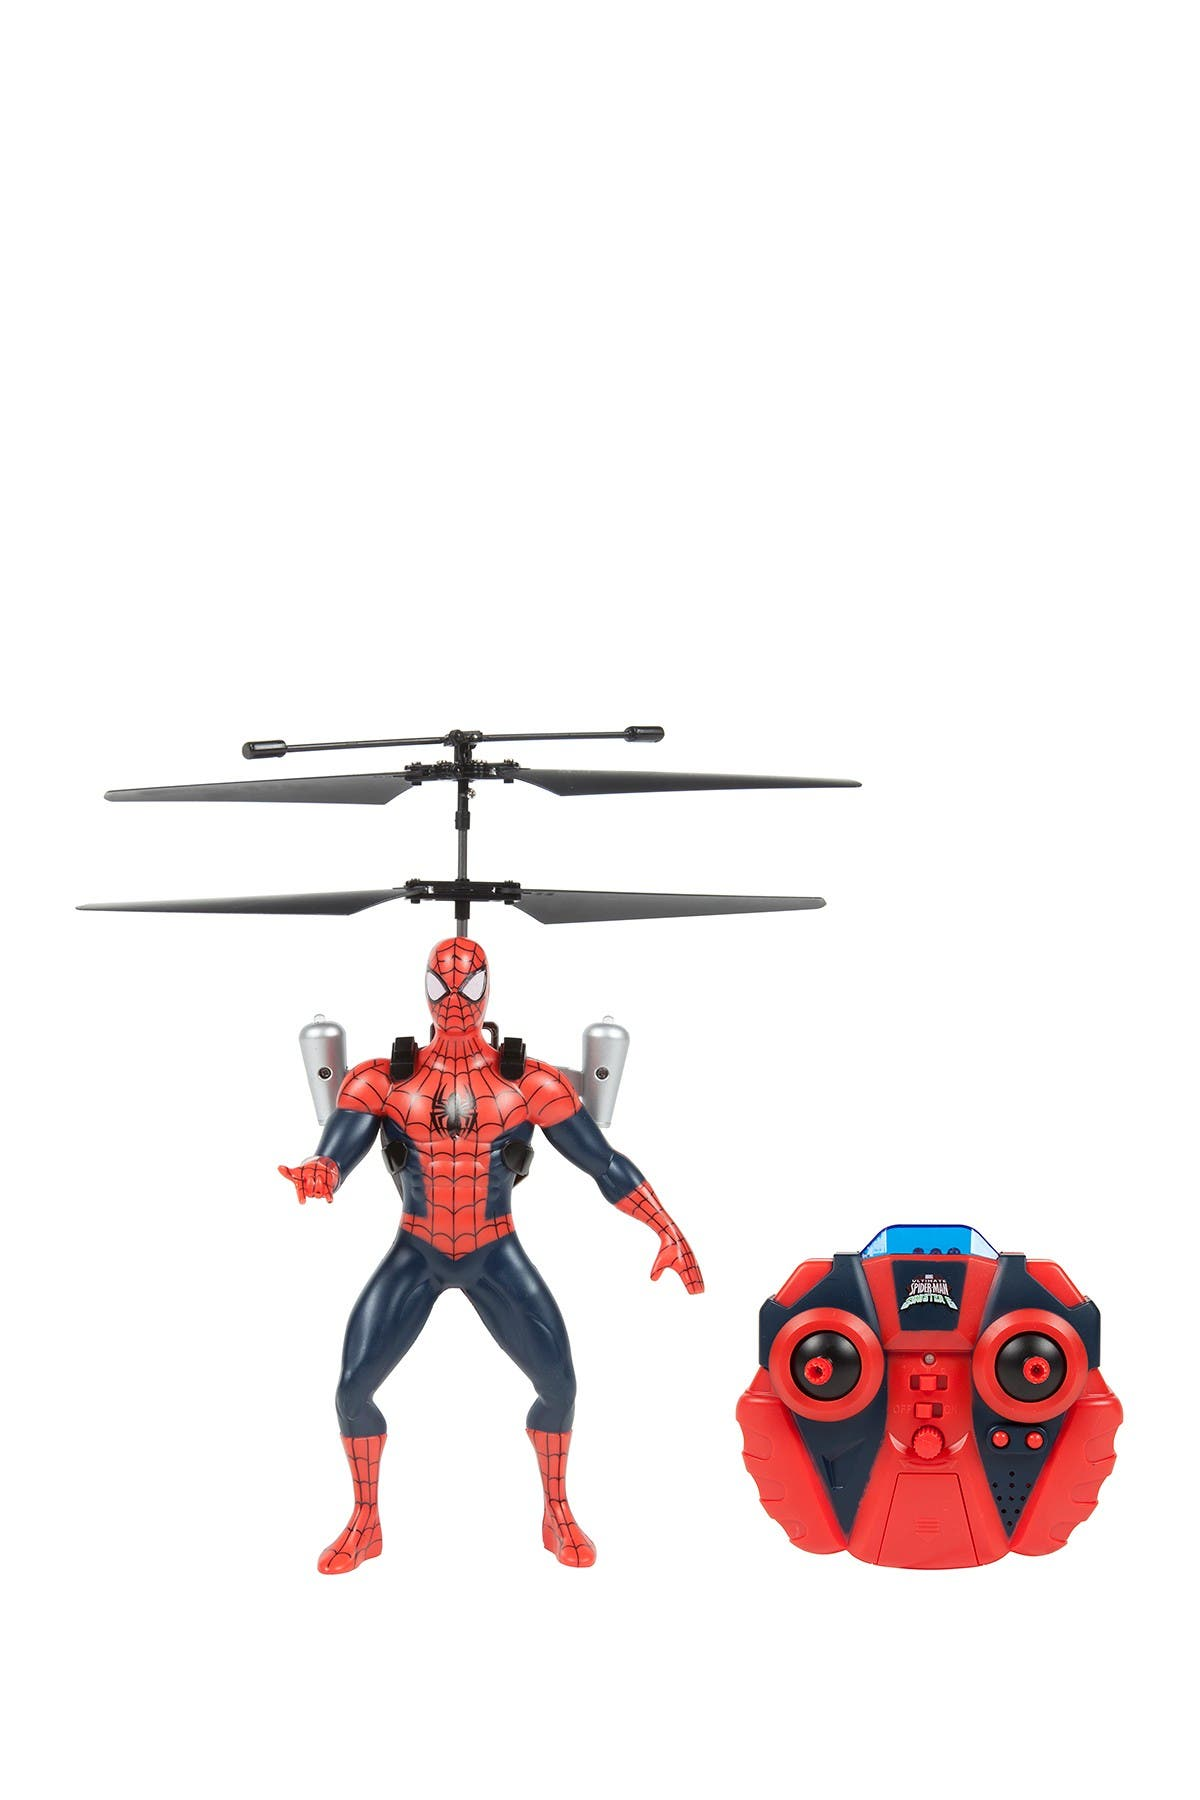 Image of World Tech Toys Marvel Licensed Ultimate Spider-Man Vs The Sinister 6 Jetpack 2CH IR RC Helicopter